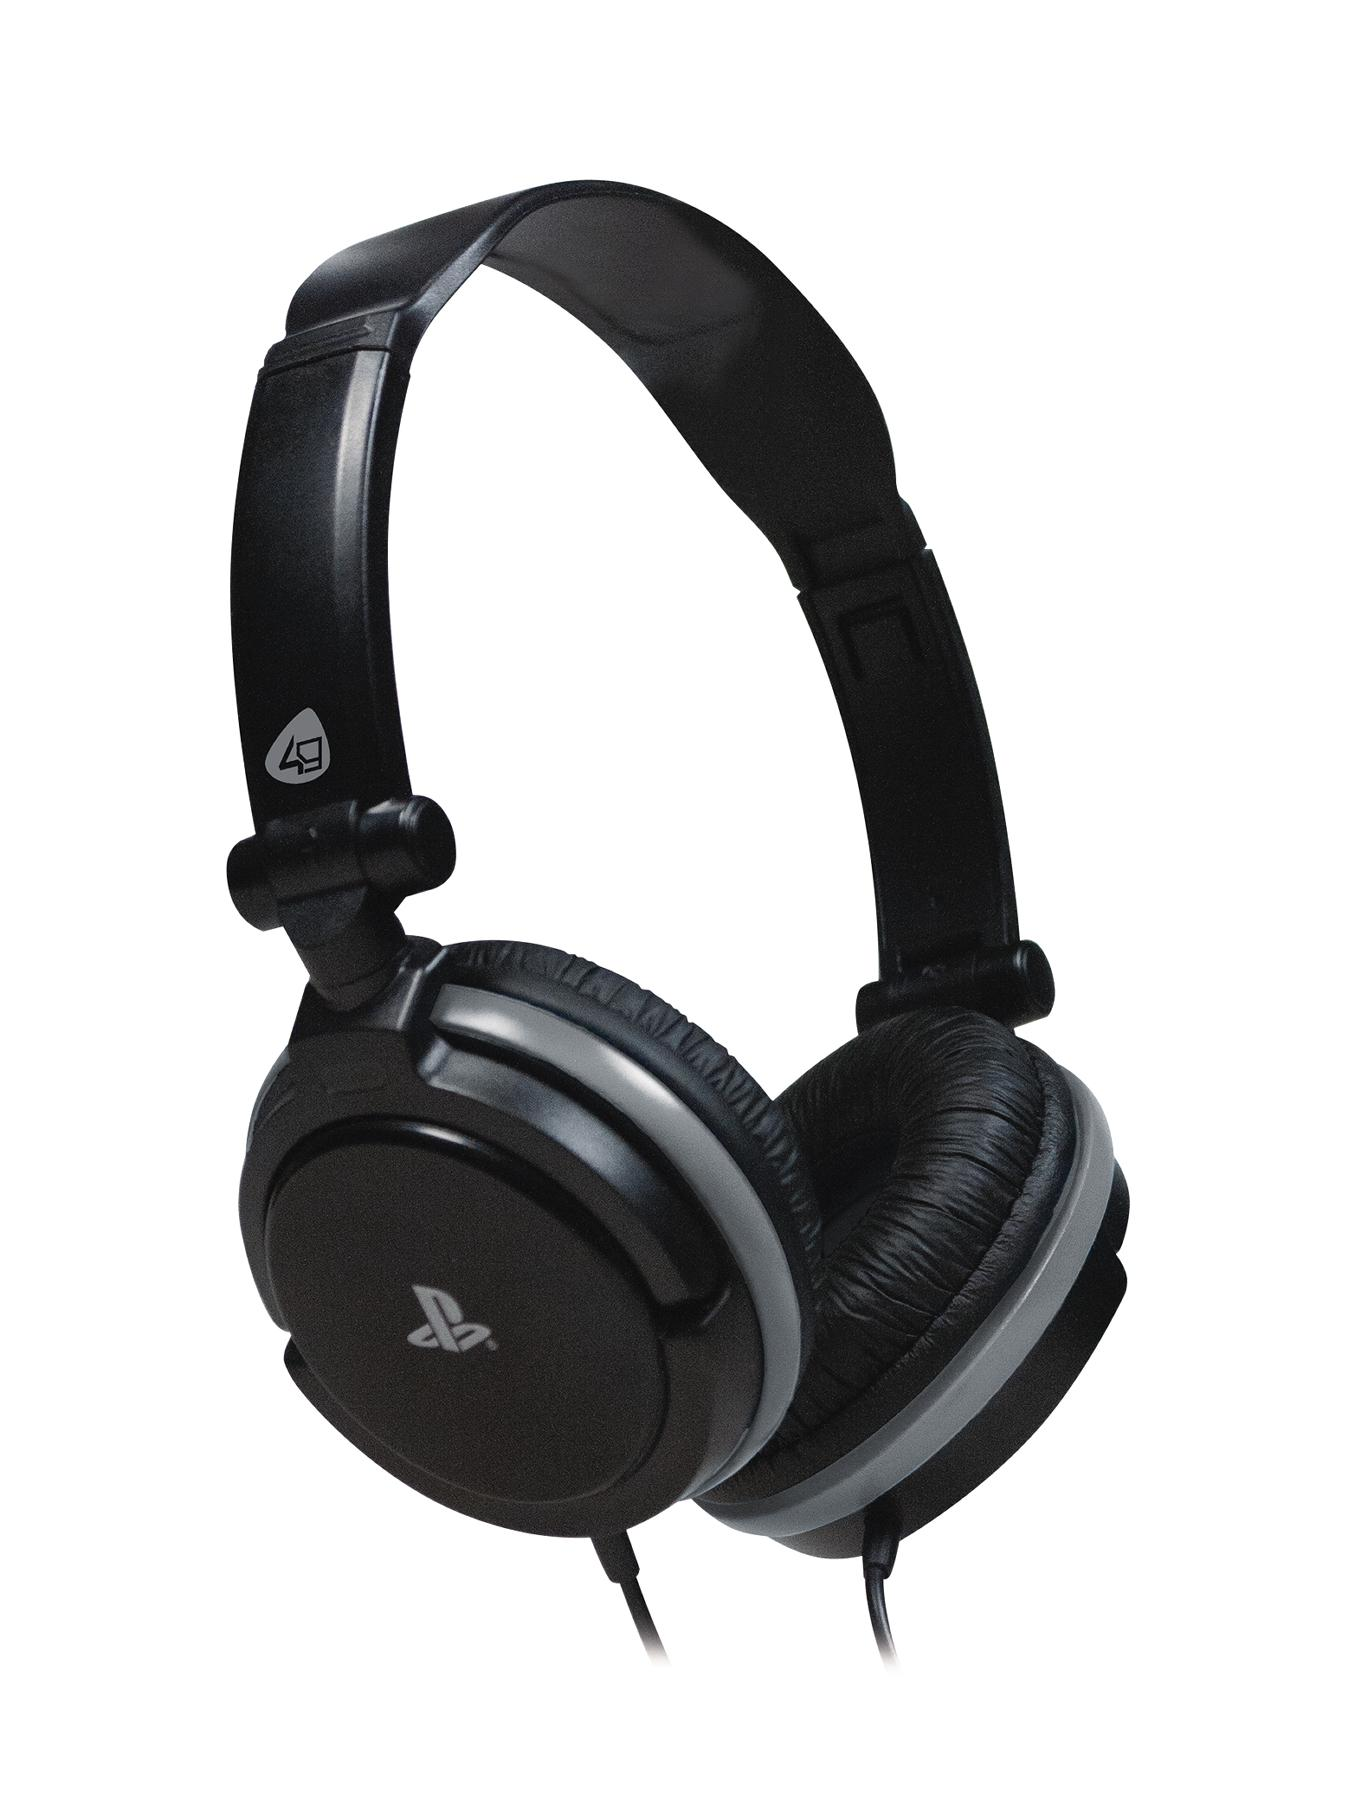 Officially Licensed Stereo Gaming Headset for PS4 & PS Vita